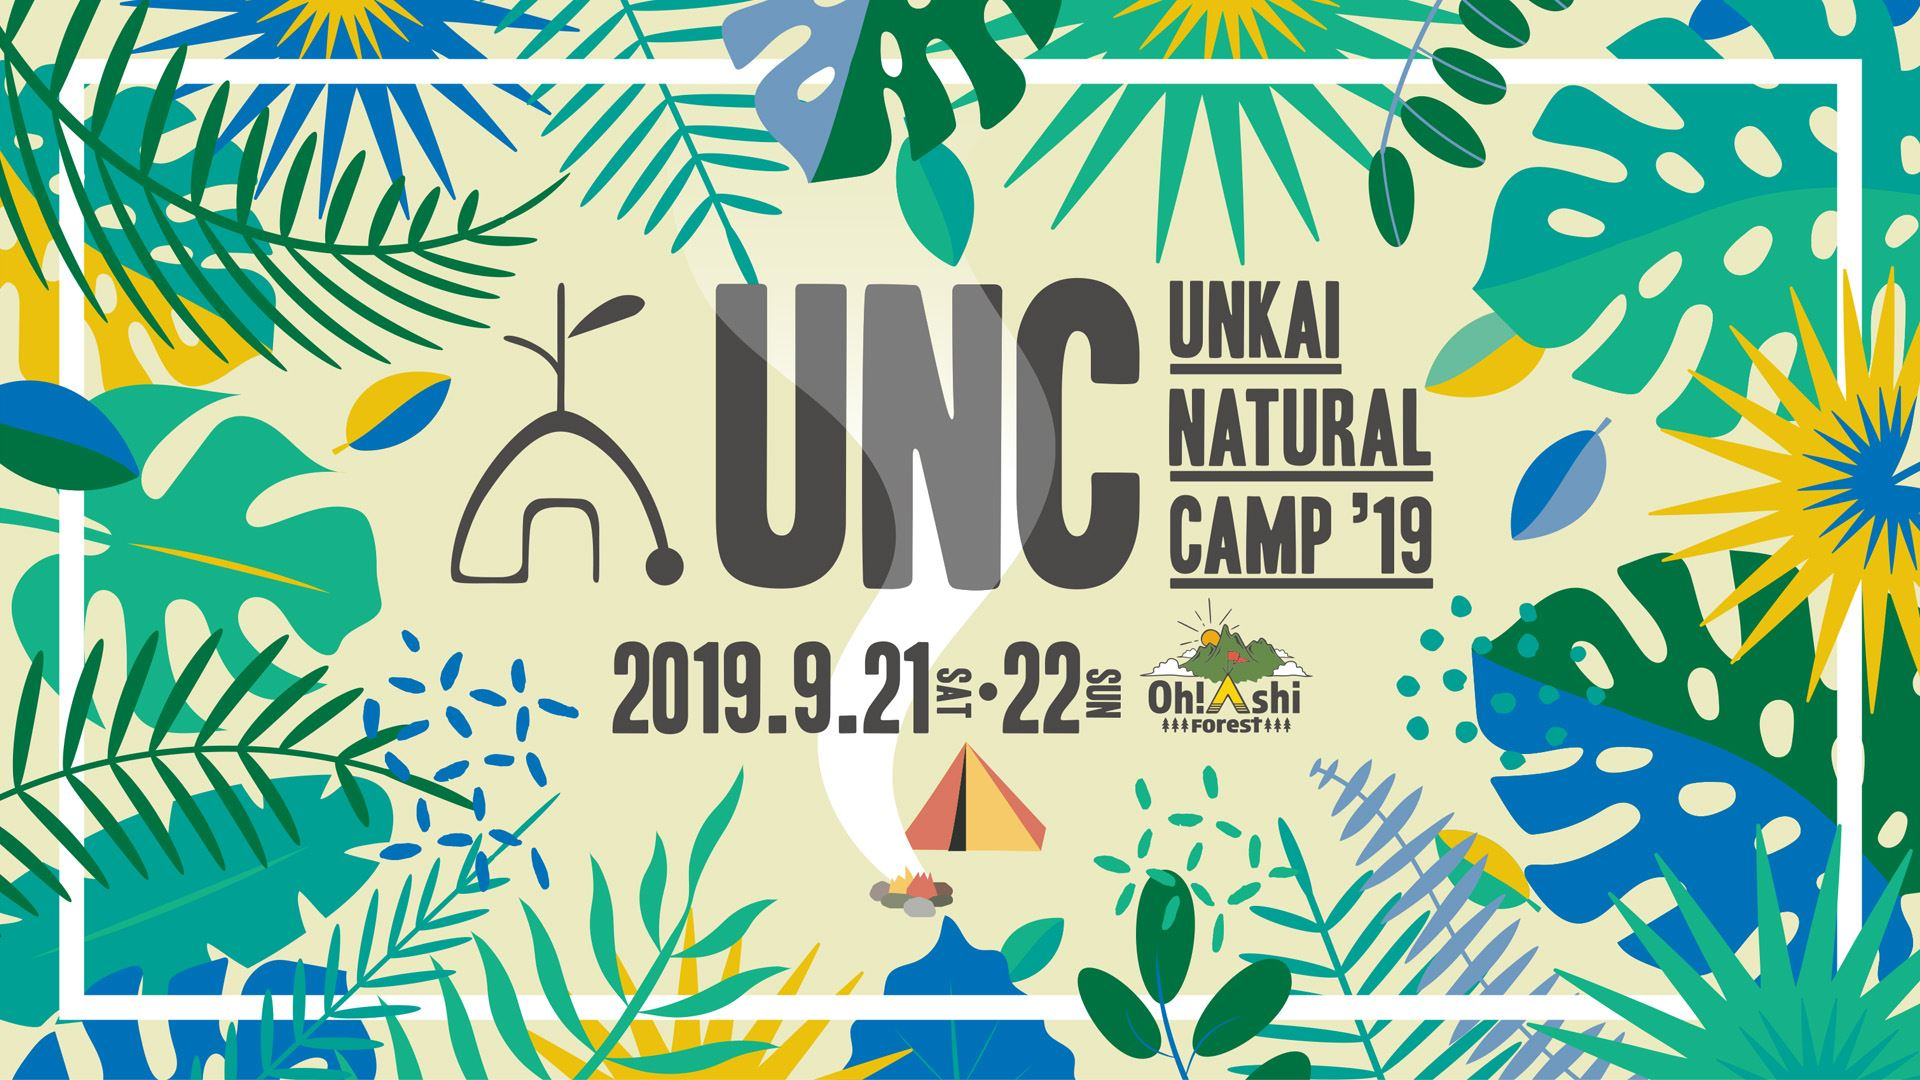 Unkai Natural Camp 2019 MUSIC , WORKSHOP , CAMPING and NATURE . in Oh!ashi Forest Camp